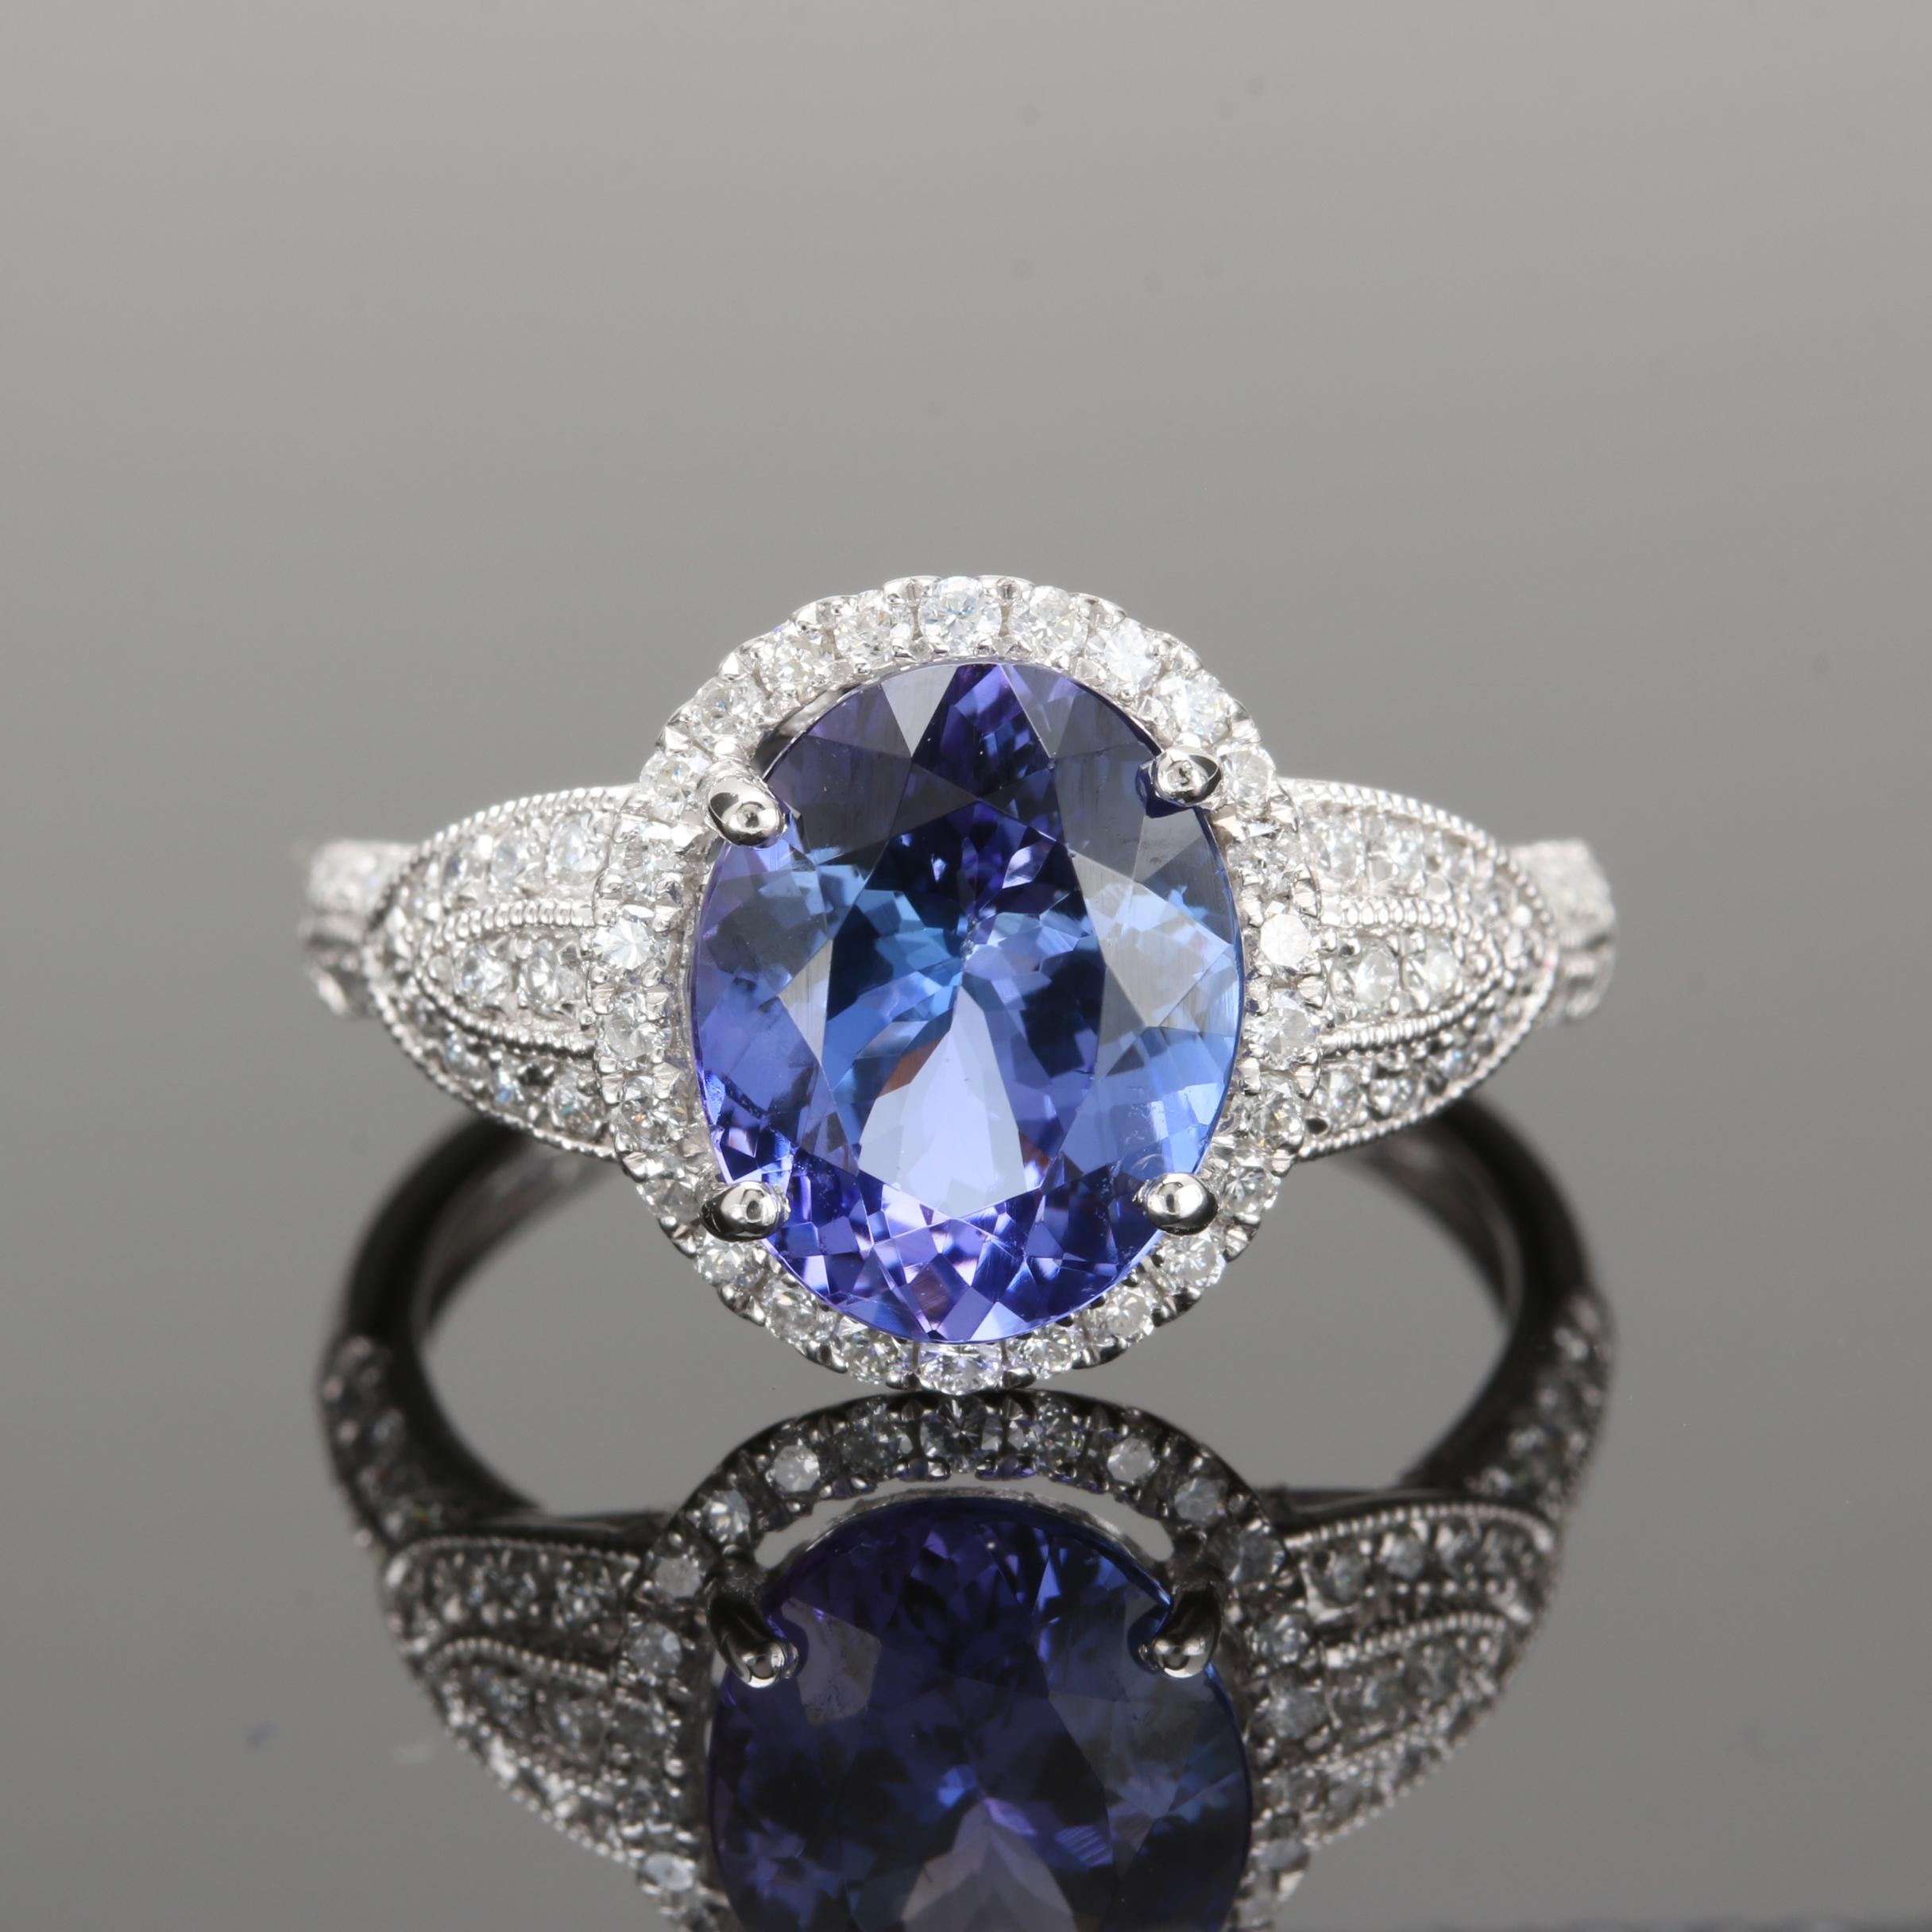 Platinum 2.94 CT Tanzanite and Diamond Ring